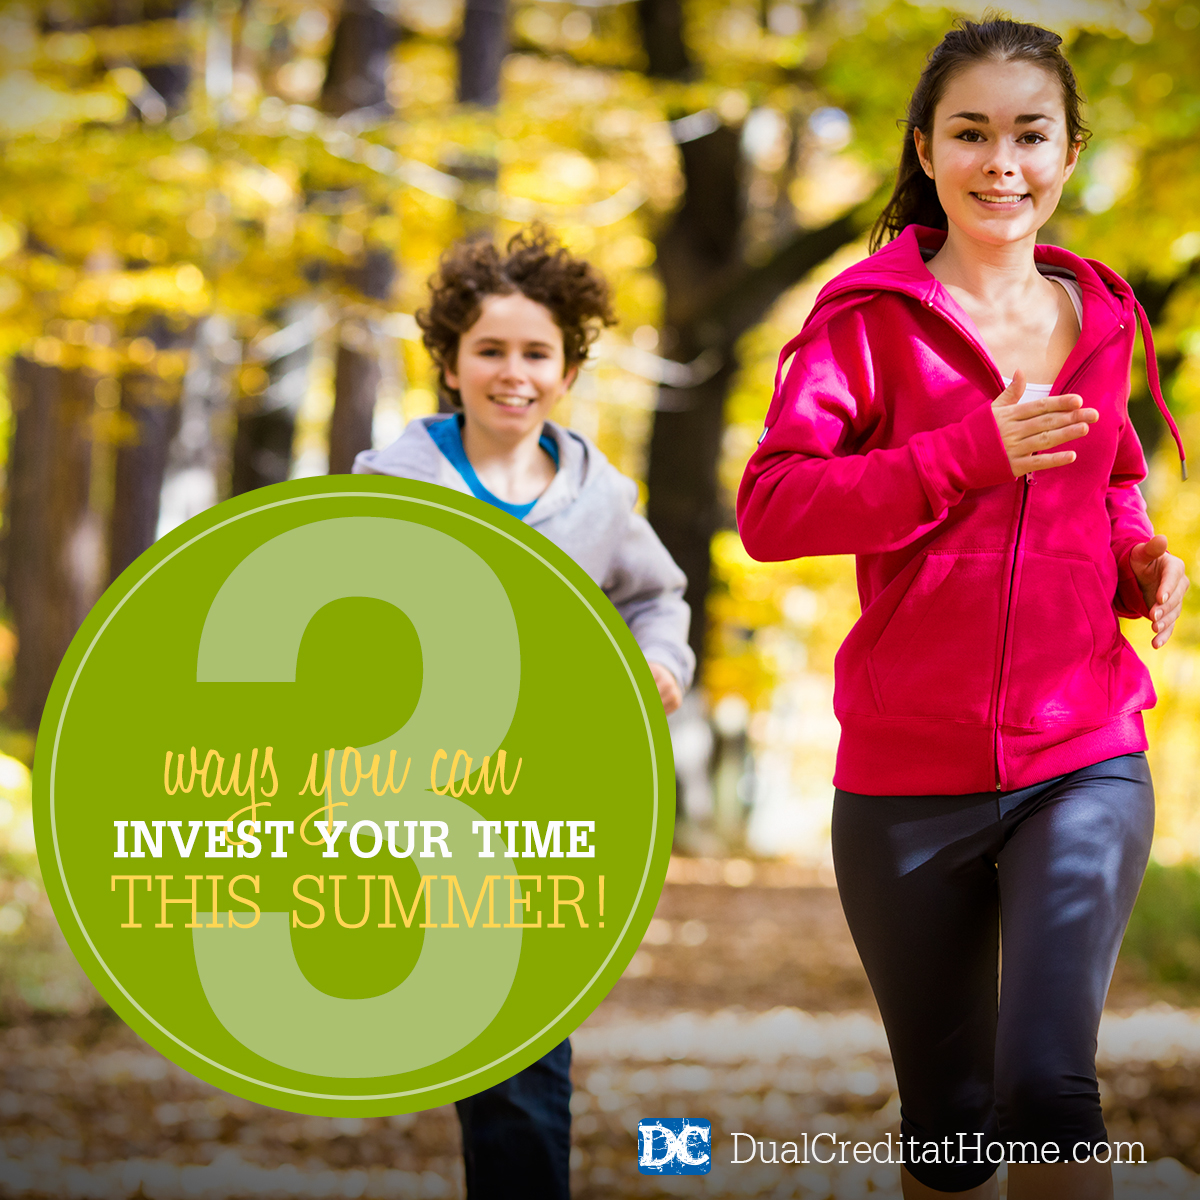 3 Ways You Can Invest Your Time This Summer